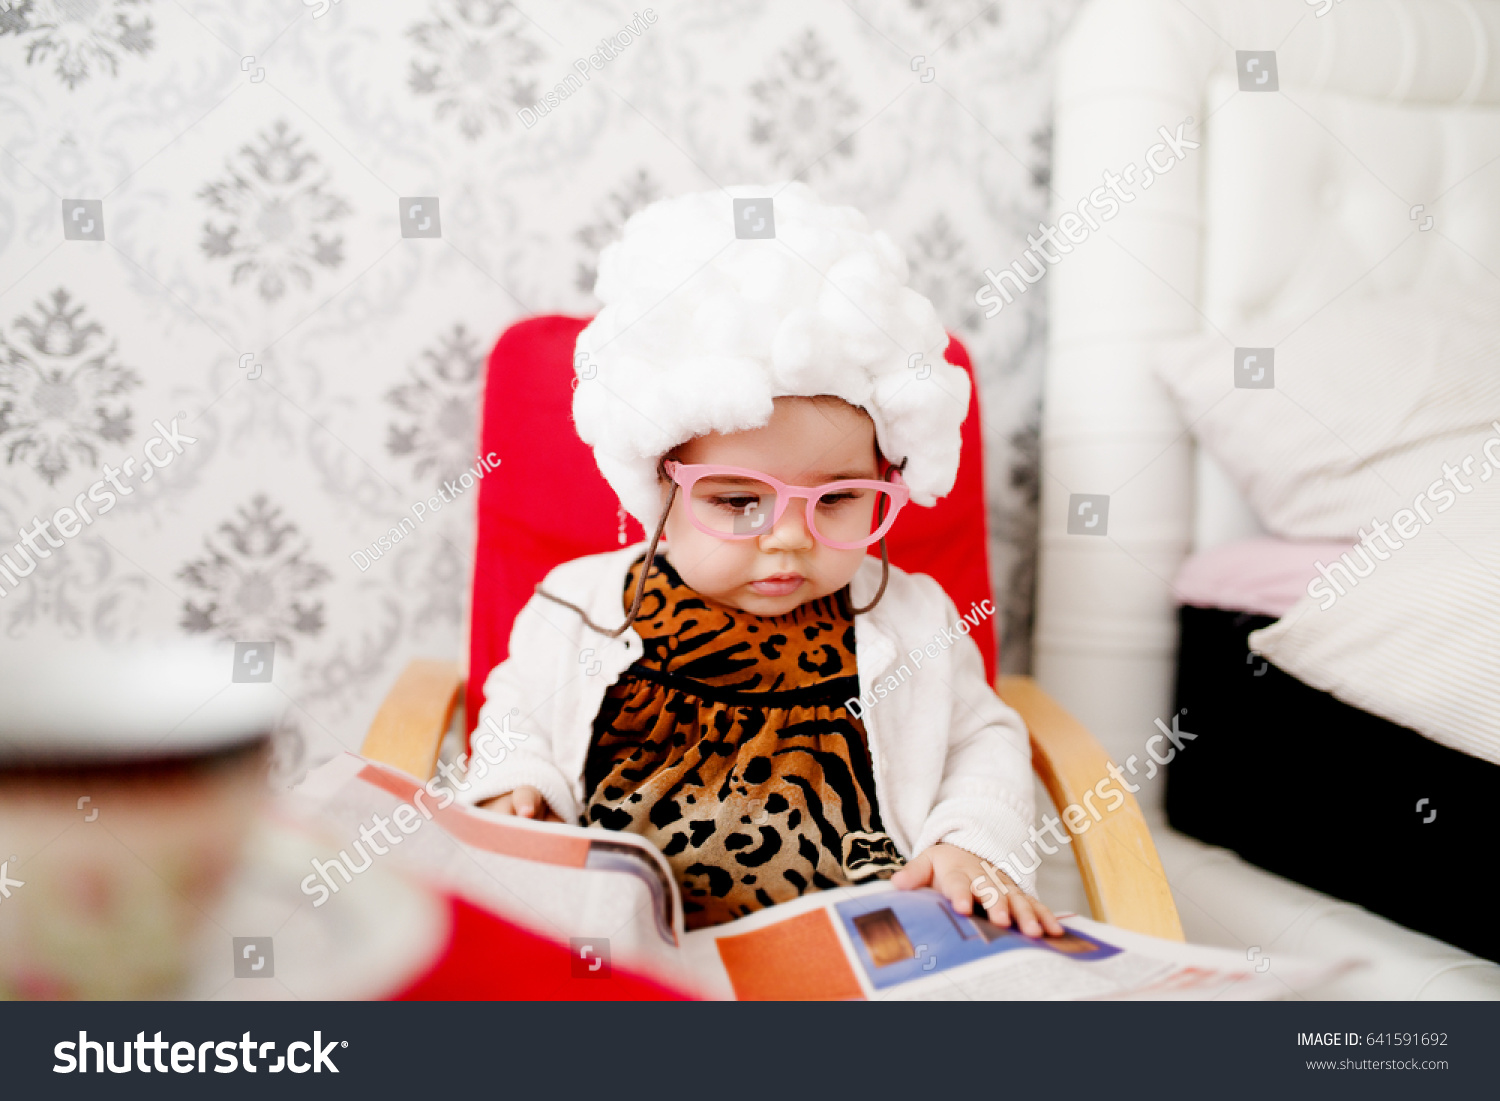 Cute baby costumed like a Cute baby costumed like a granny pretending to read newspaper  sc 1 st  Shutterstock & Cute Baby Costumed Like Cute Baby Stock Photo (Royalty Free ...